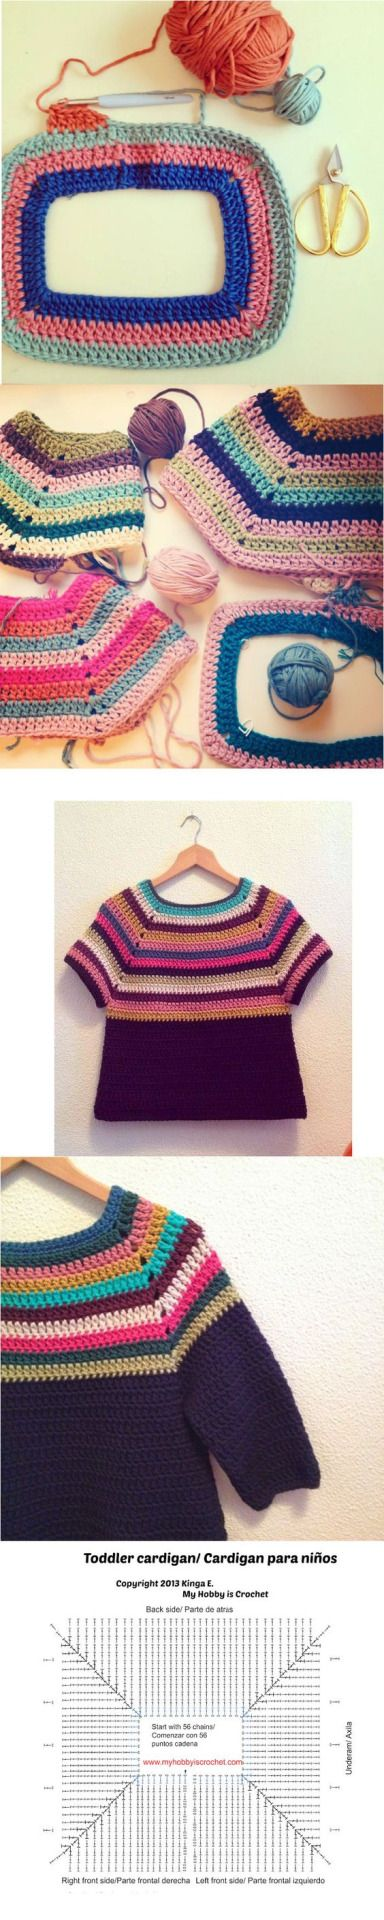 This is such a smart little idea! The original pattern for this toddler cardigan has been amended. Instead of dividing for the button band, just crochet around the yoke of the neck to get this effect. Nice! Found via Pinterest.